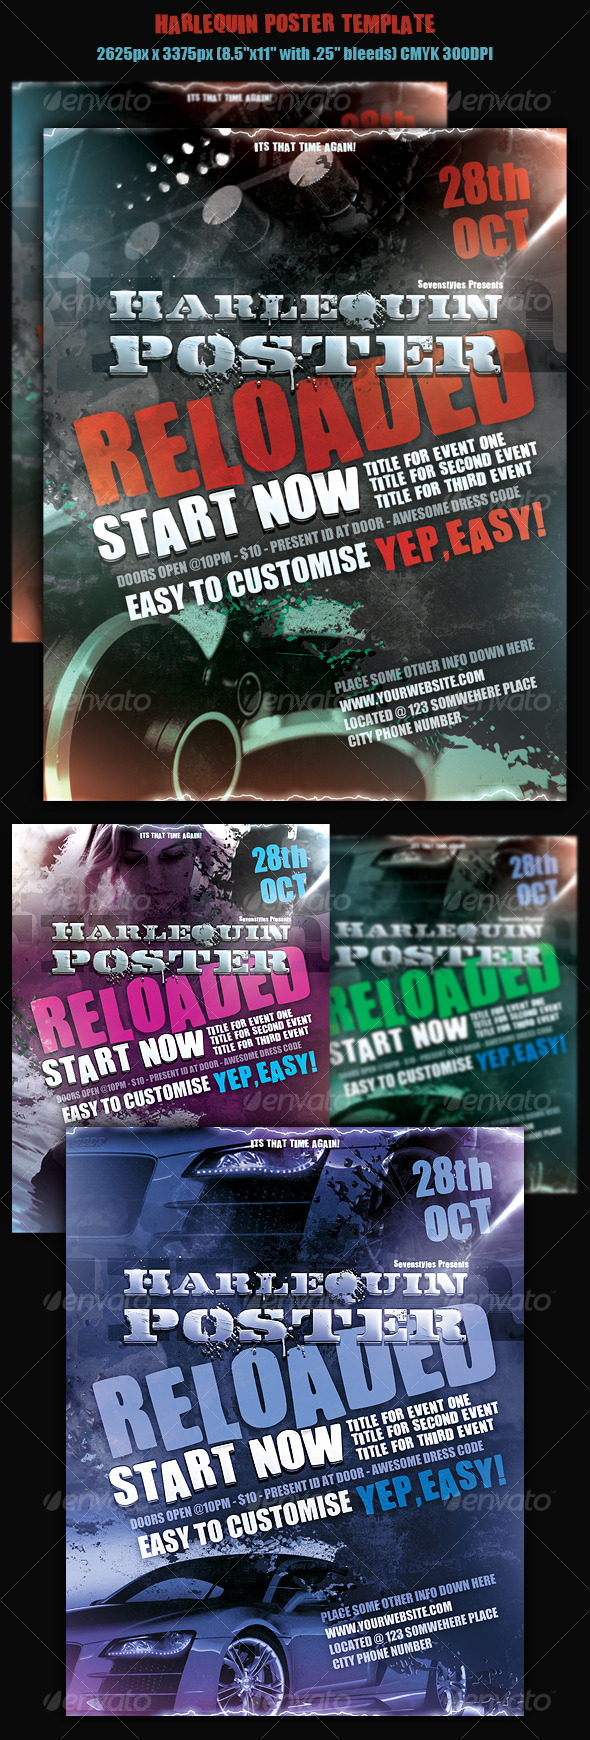 GraphicRiver Harlequin Poster Template 129566